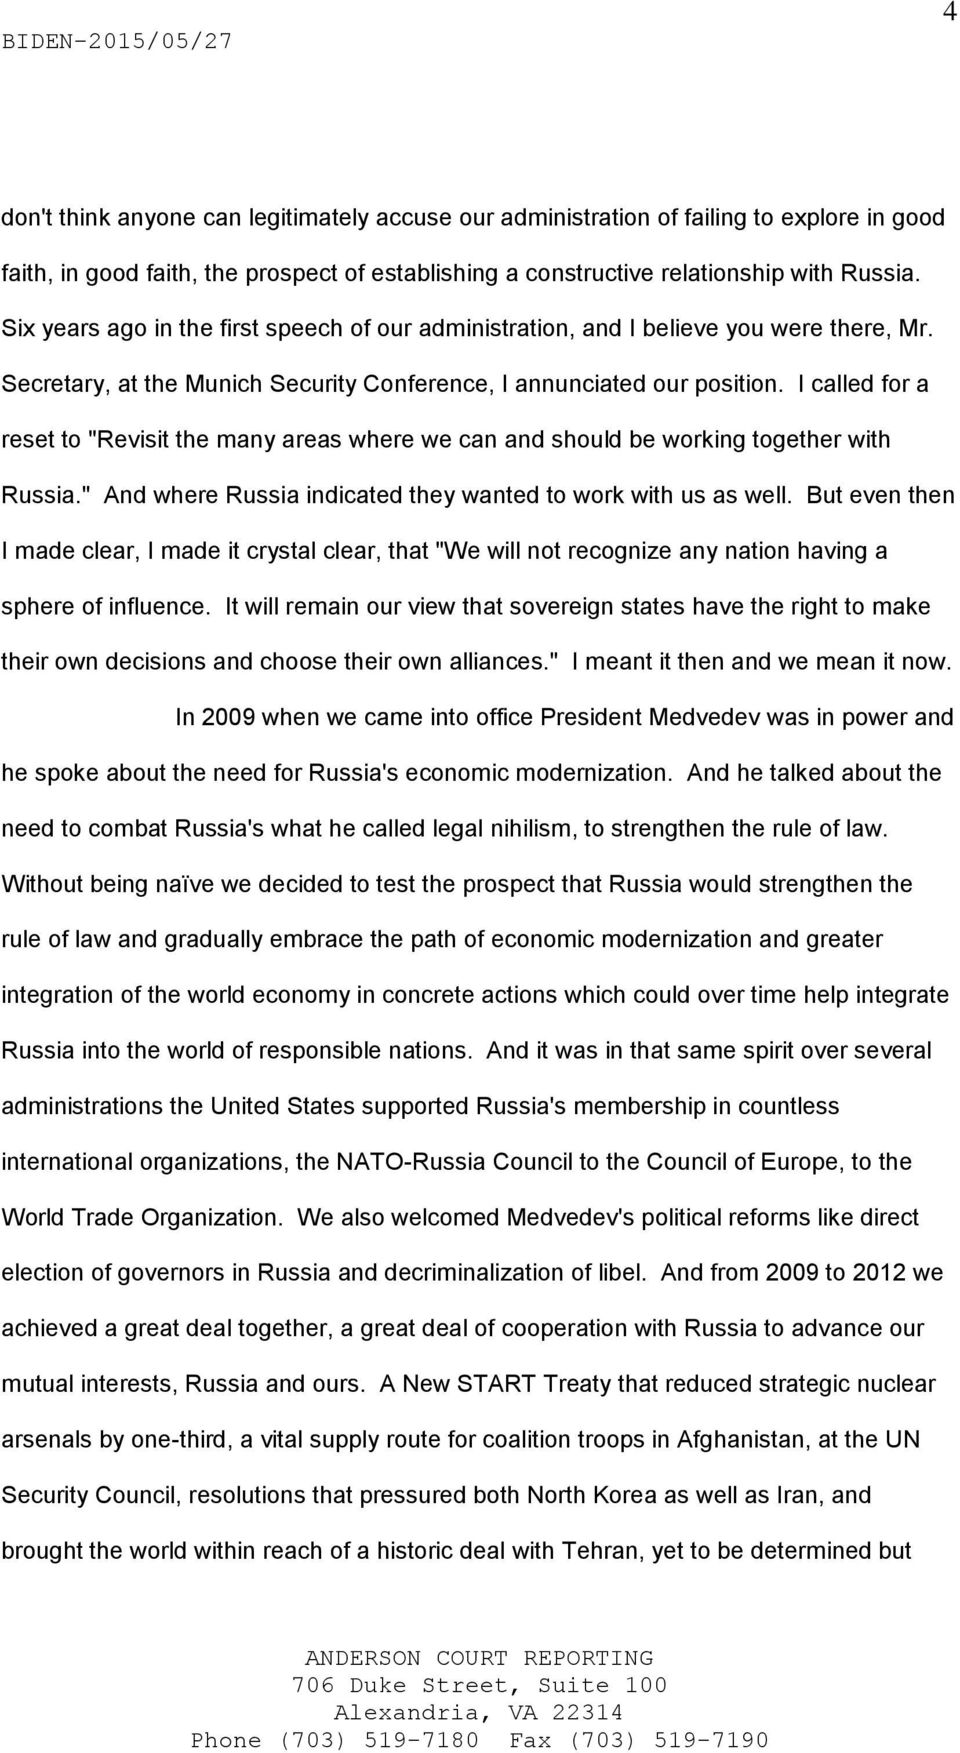 "I called for a reset to ""Revisit the many areas where we can and should be working together with Russia."" And where Russia indicated they wanted to work with us as well."